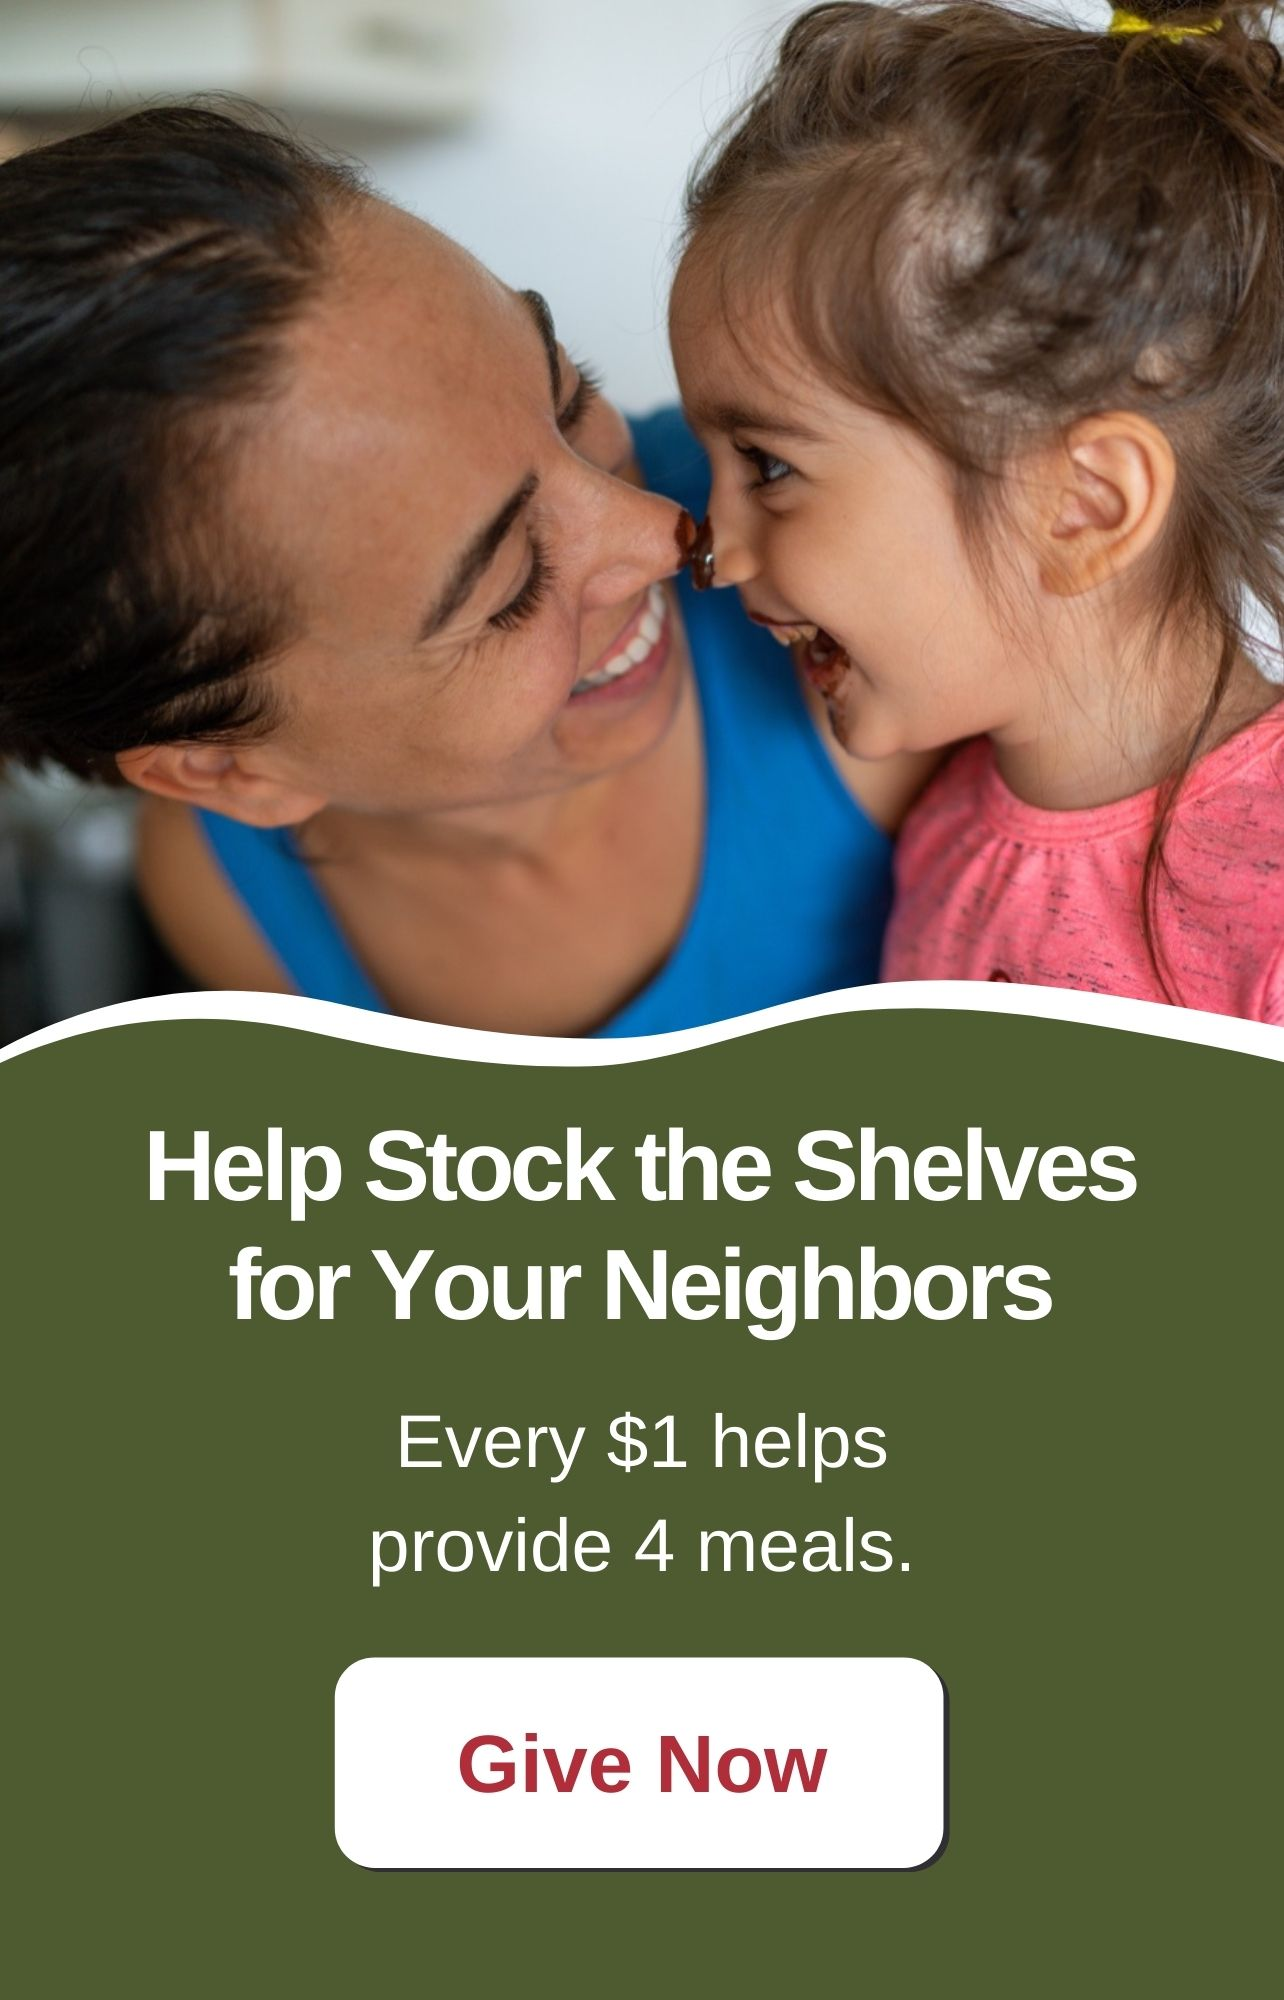 Help Stock the Shelves for Your Neighbors